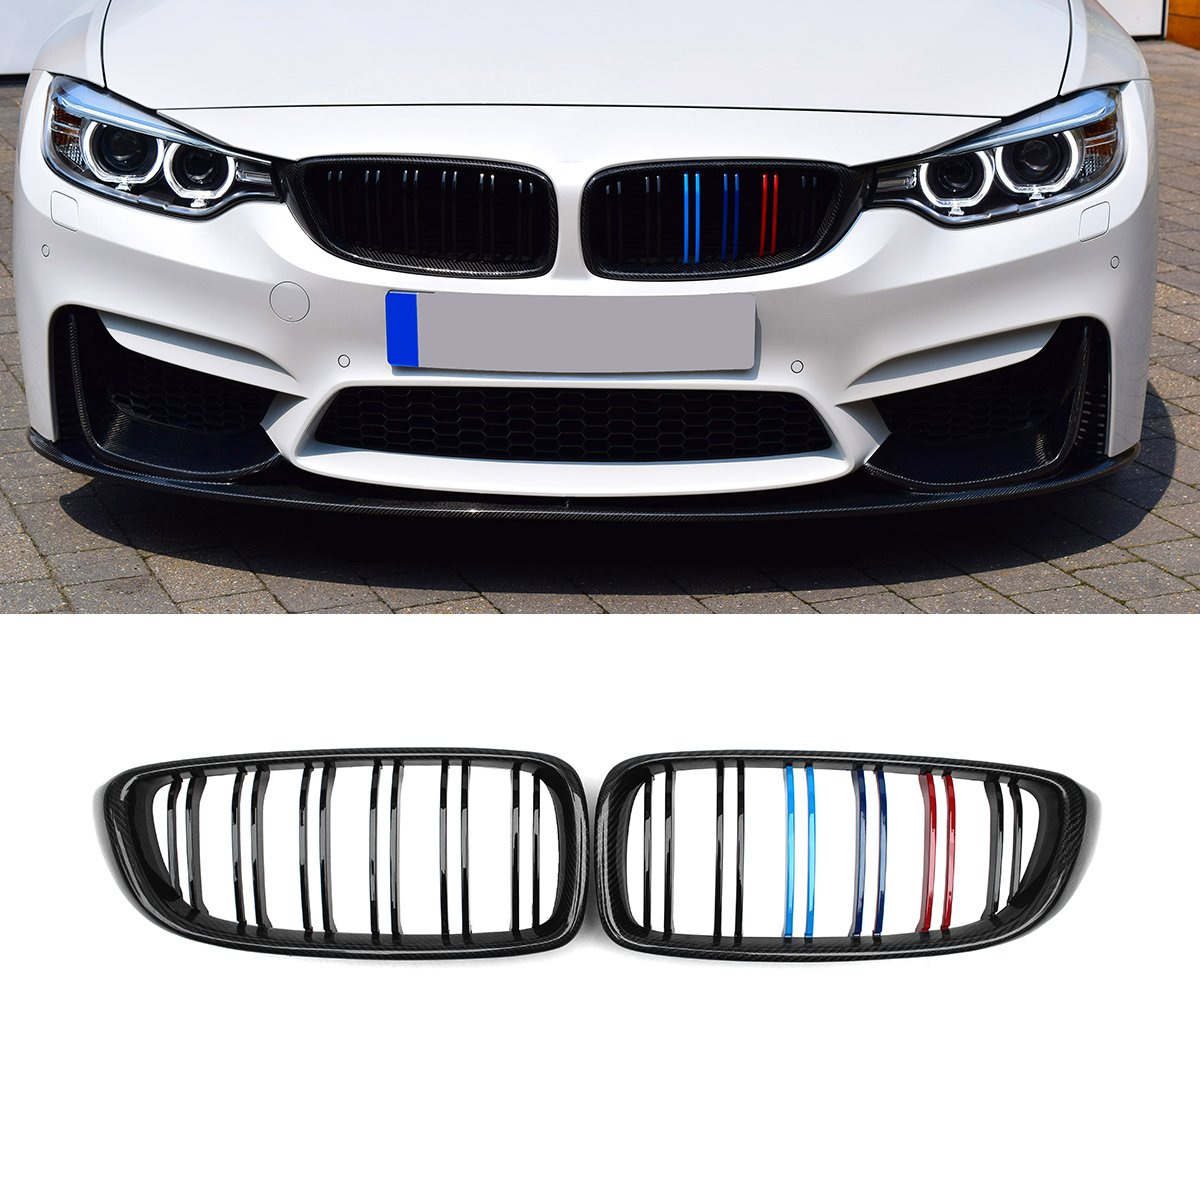 F32 Grille, Carbon Fiber Front Replacement Kidney Grillfor 4 Series F32 F33 F36 F80 F82 Gloss M Color